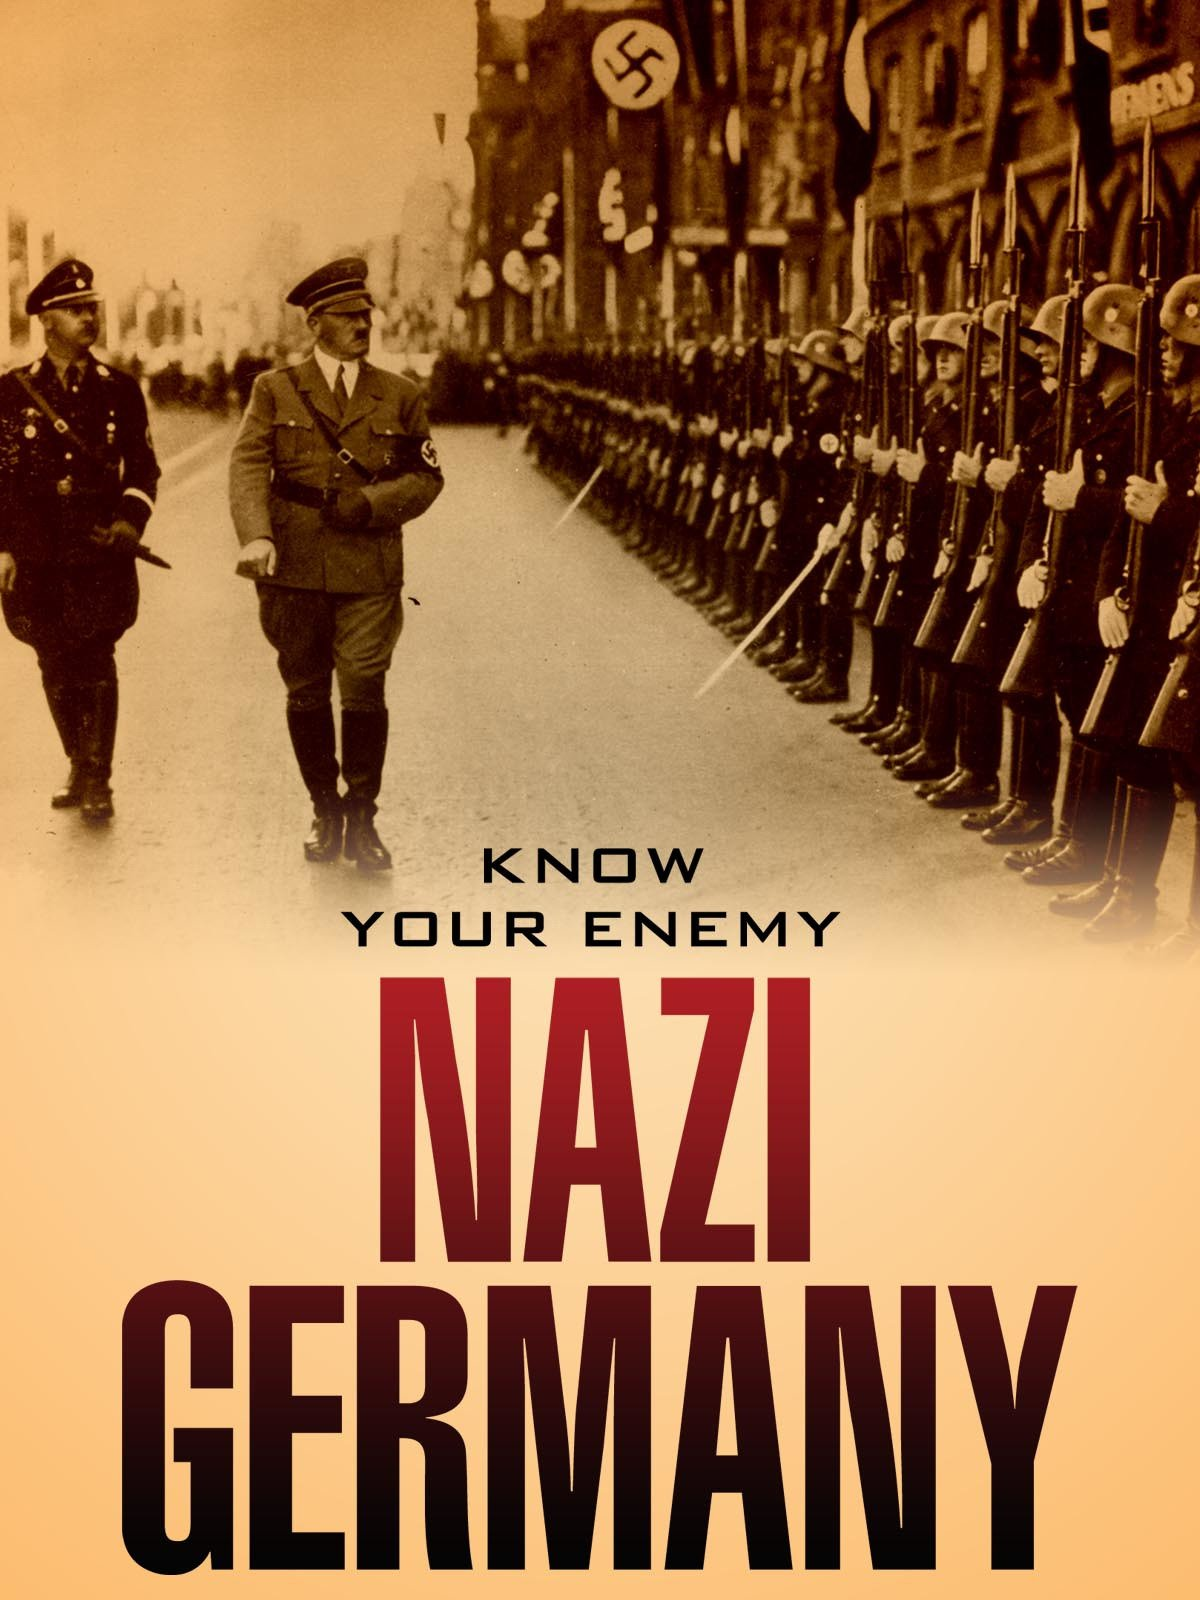 Know Your Enemy: Nazi Germany